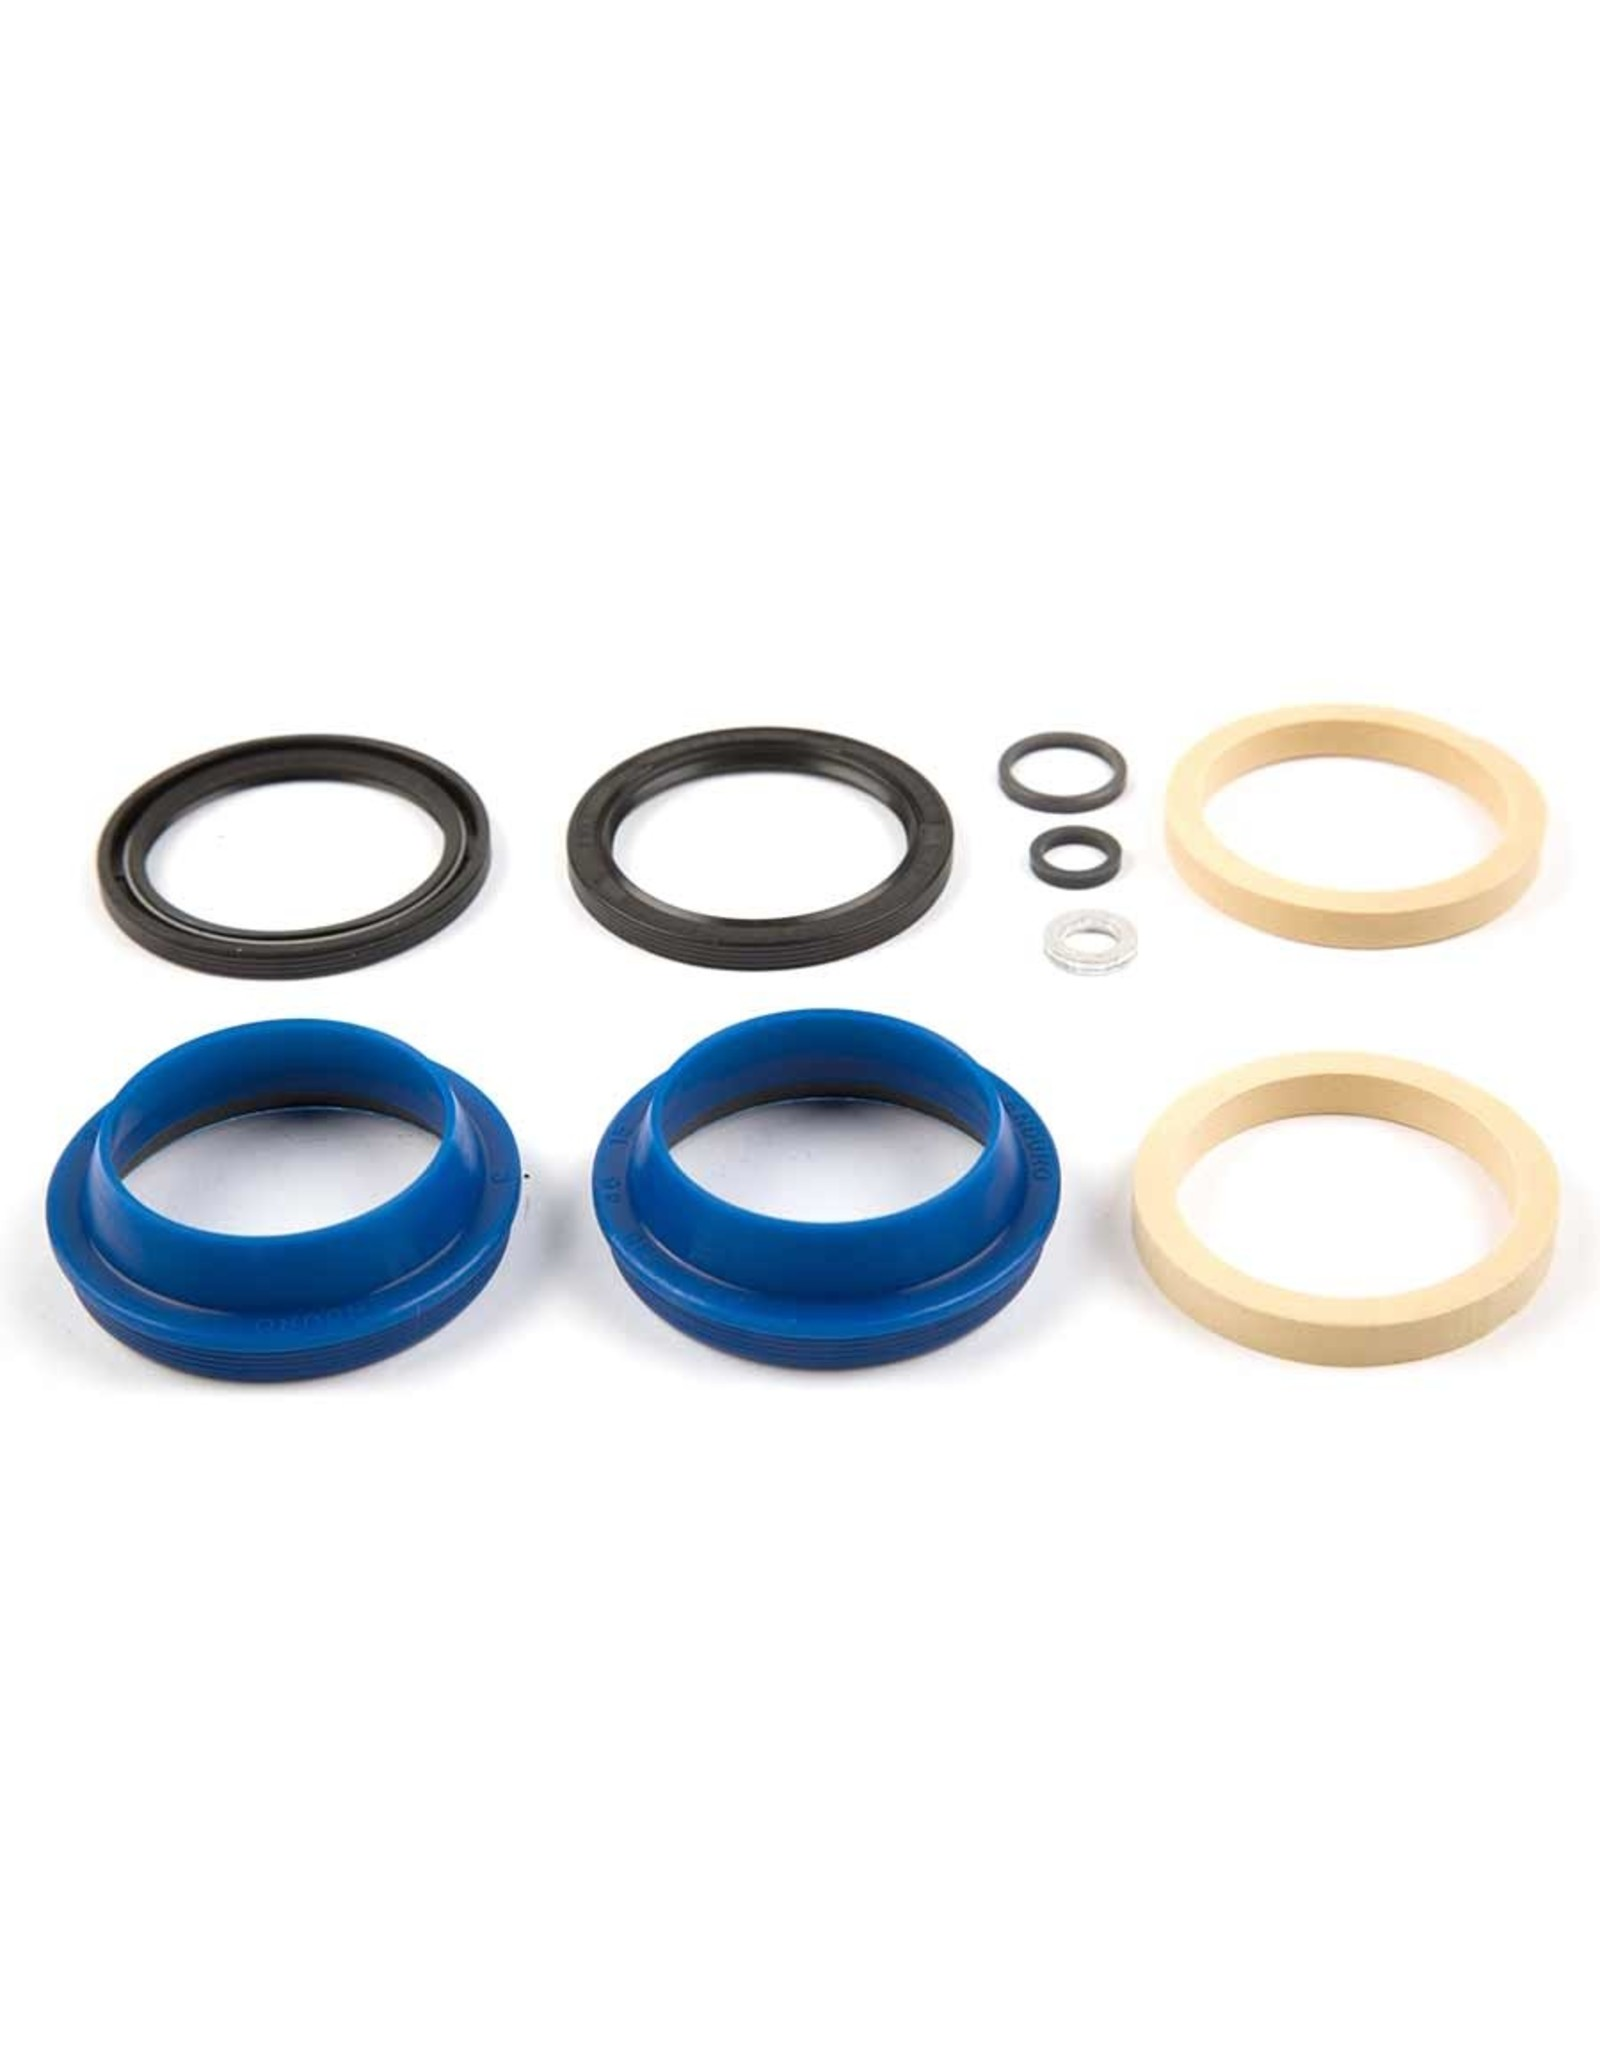 Enduro Enduro, Fox fork seal kit, 36mm, Includes Wipers, Seals, Foam Rings, And Crush Washers